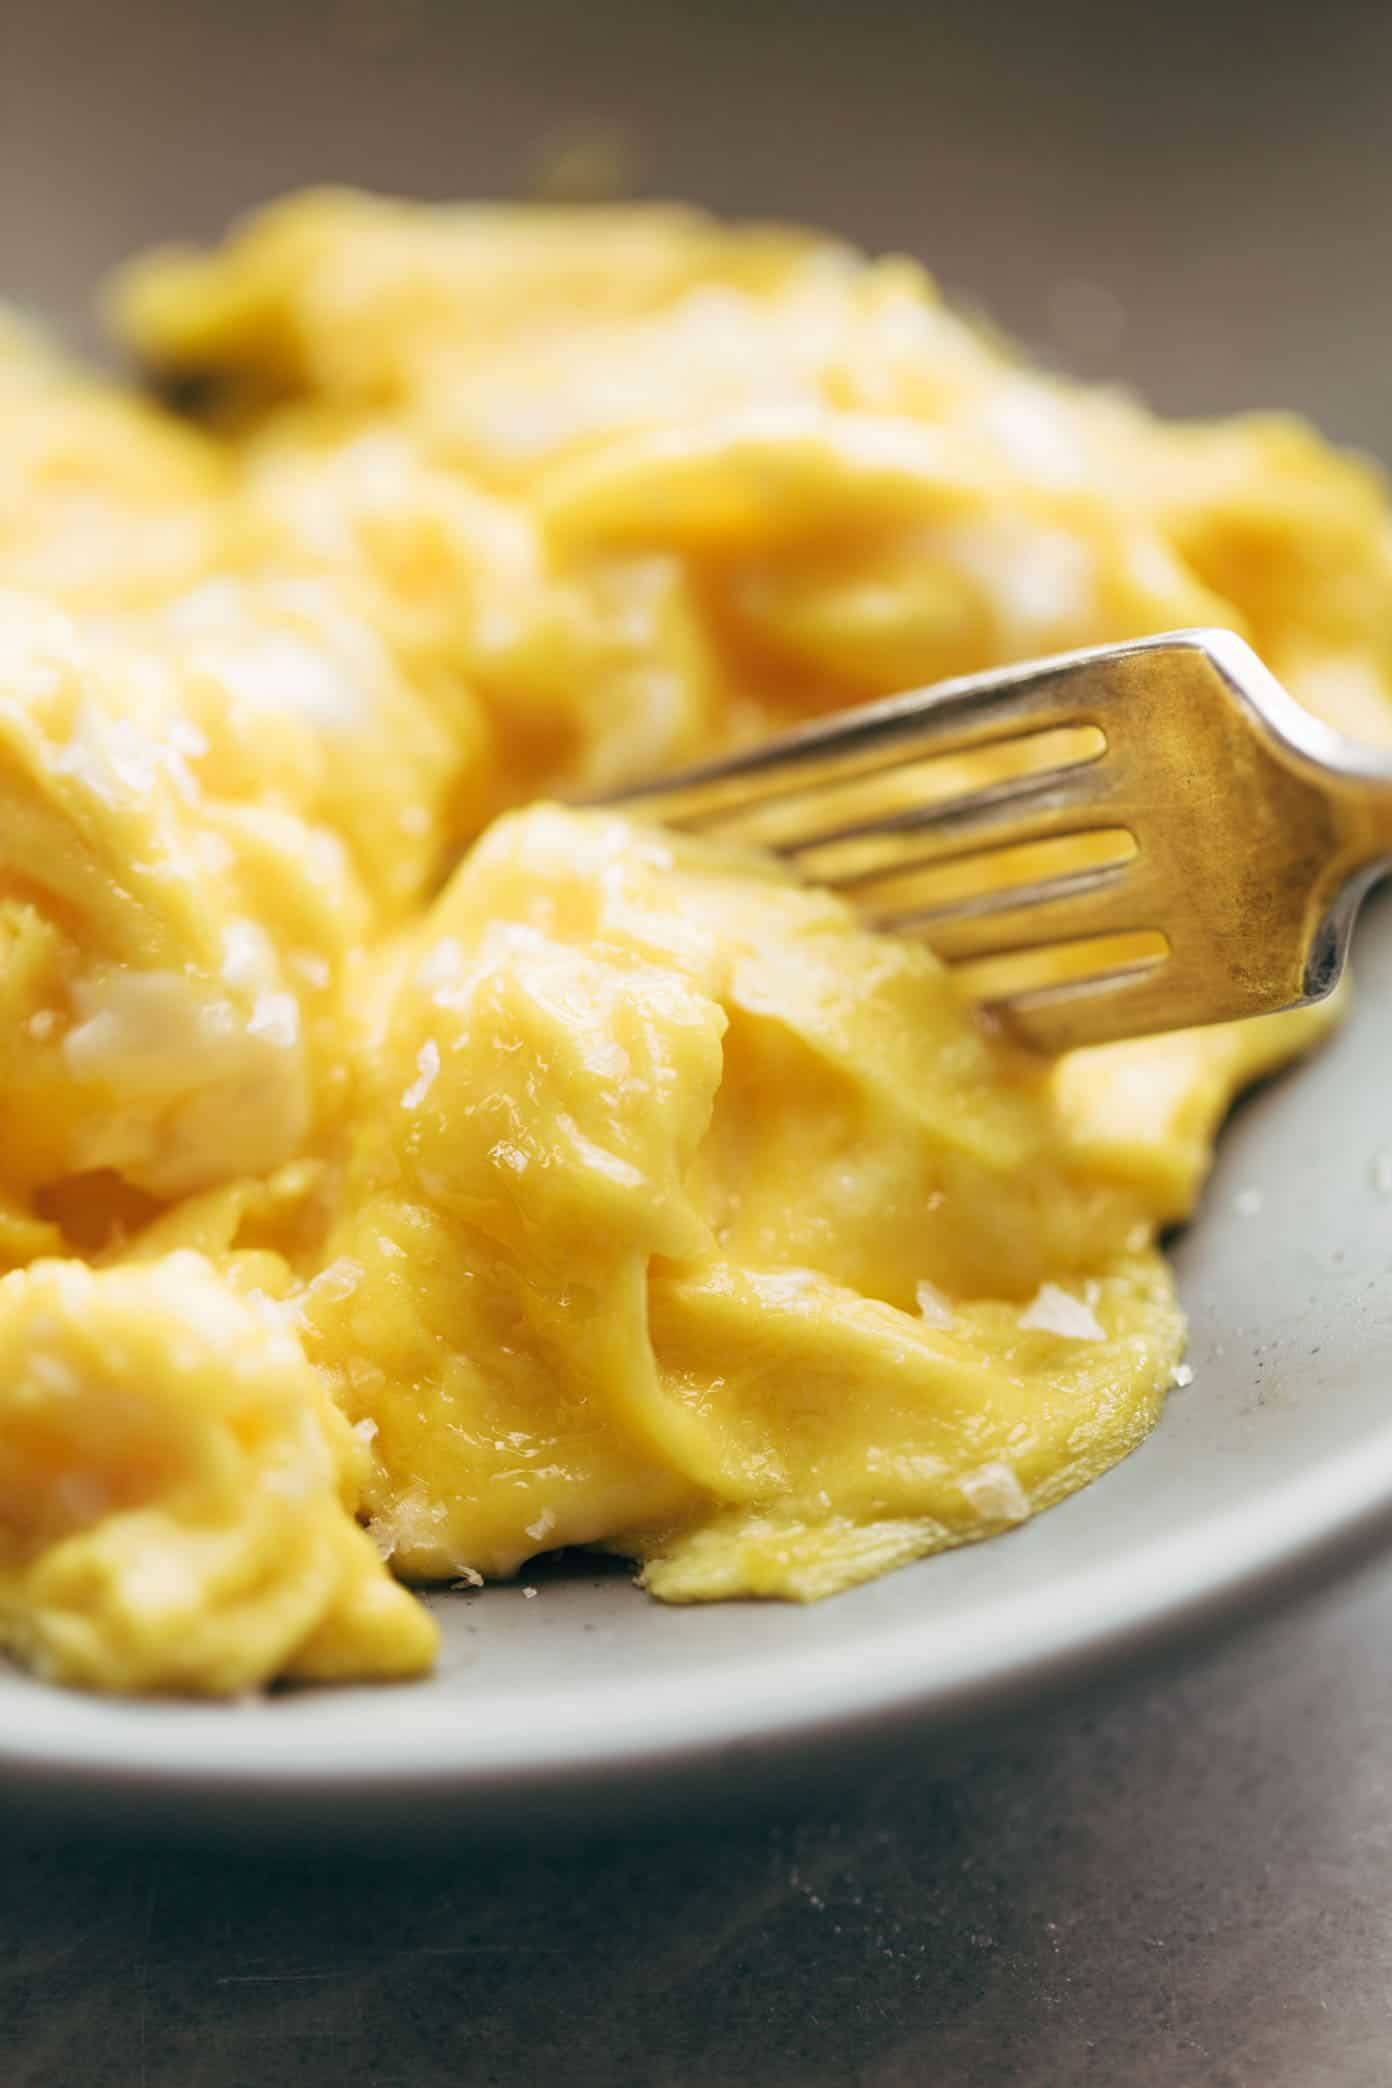 soft scrambled eggs with a fork on a plate